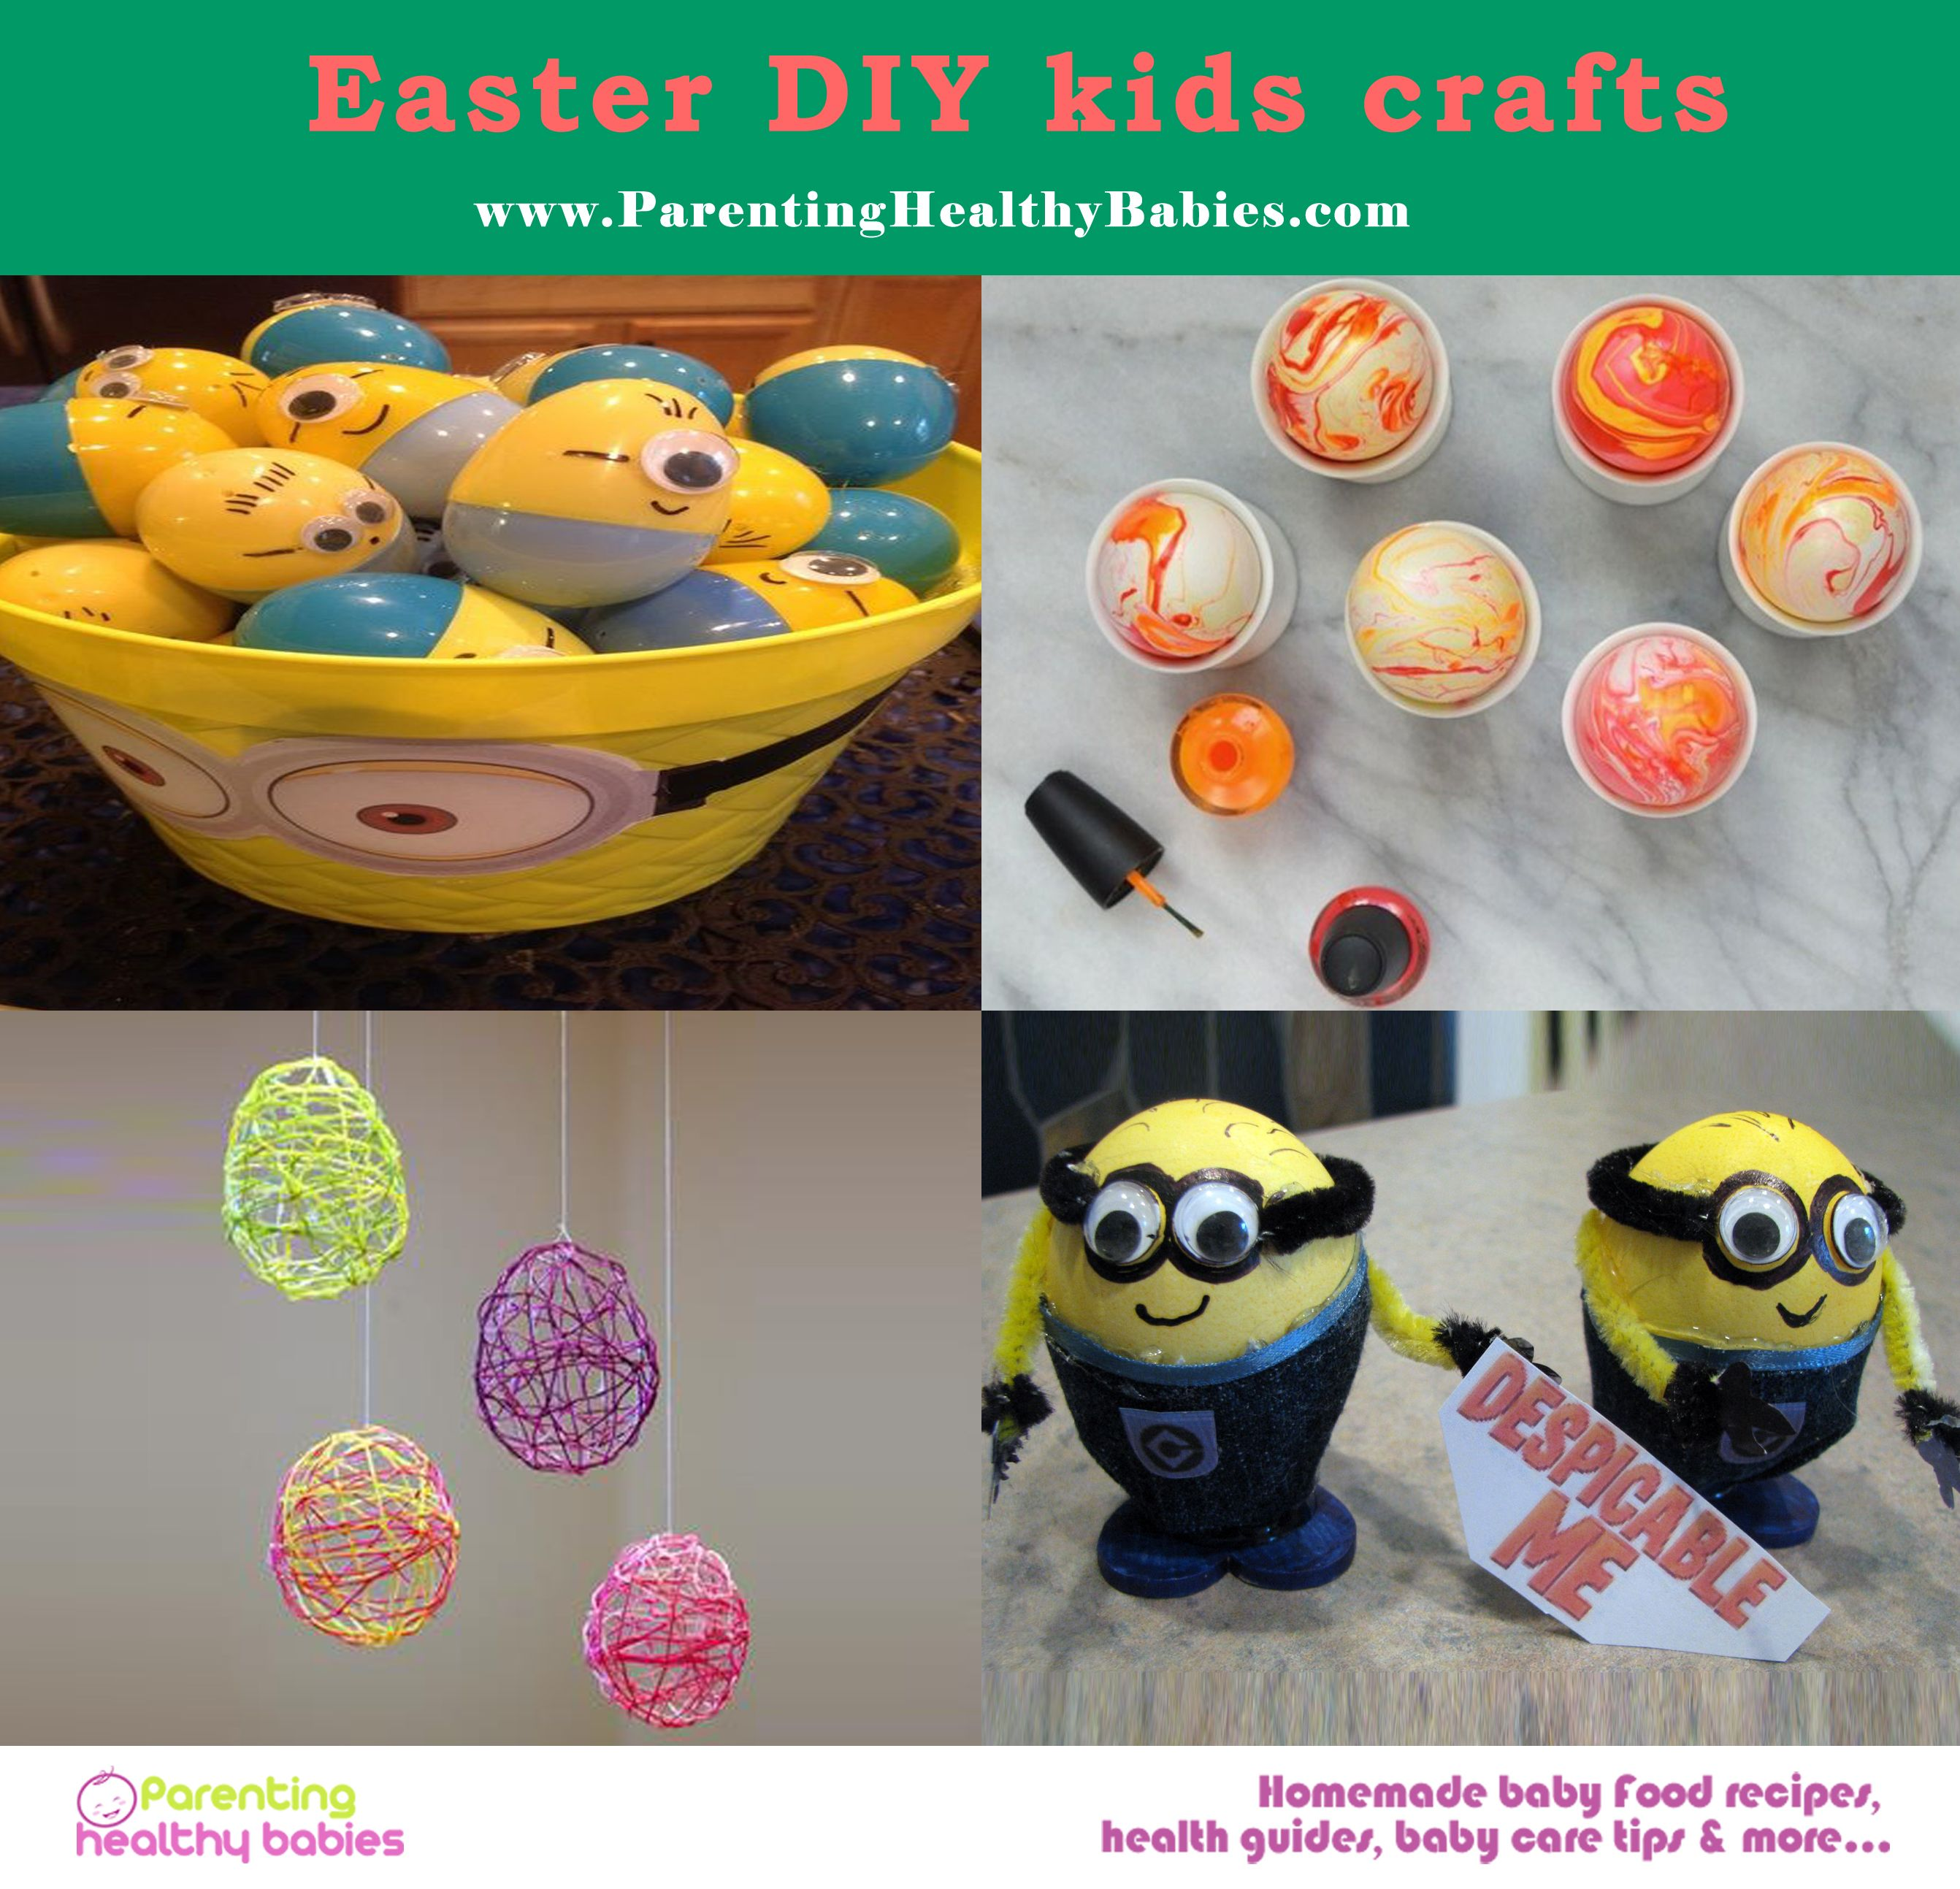 Minion easter eggs httpparentinghealthybabies20 do it minion easter eggs httpparentinghealthybabies20 do it solutioingenieria Images